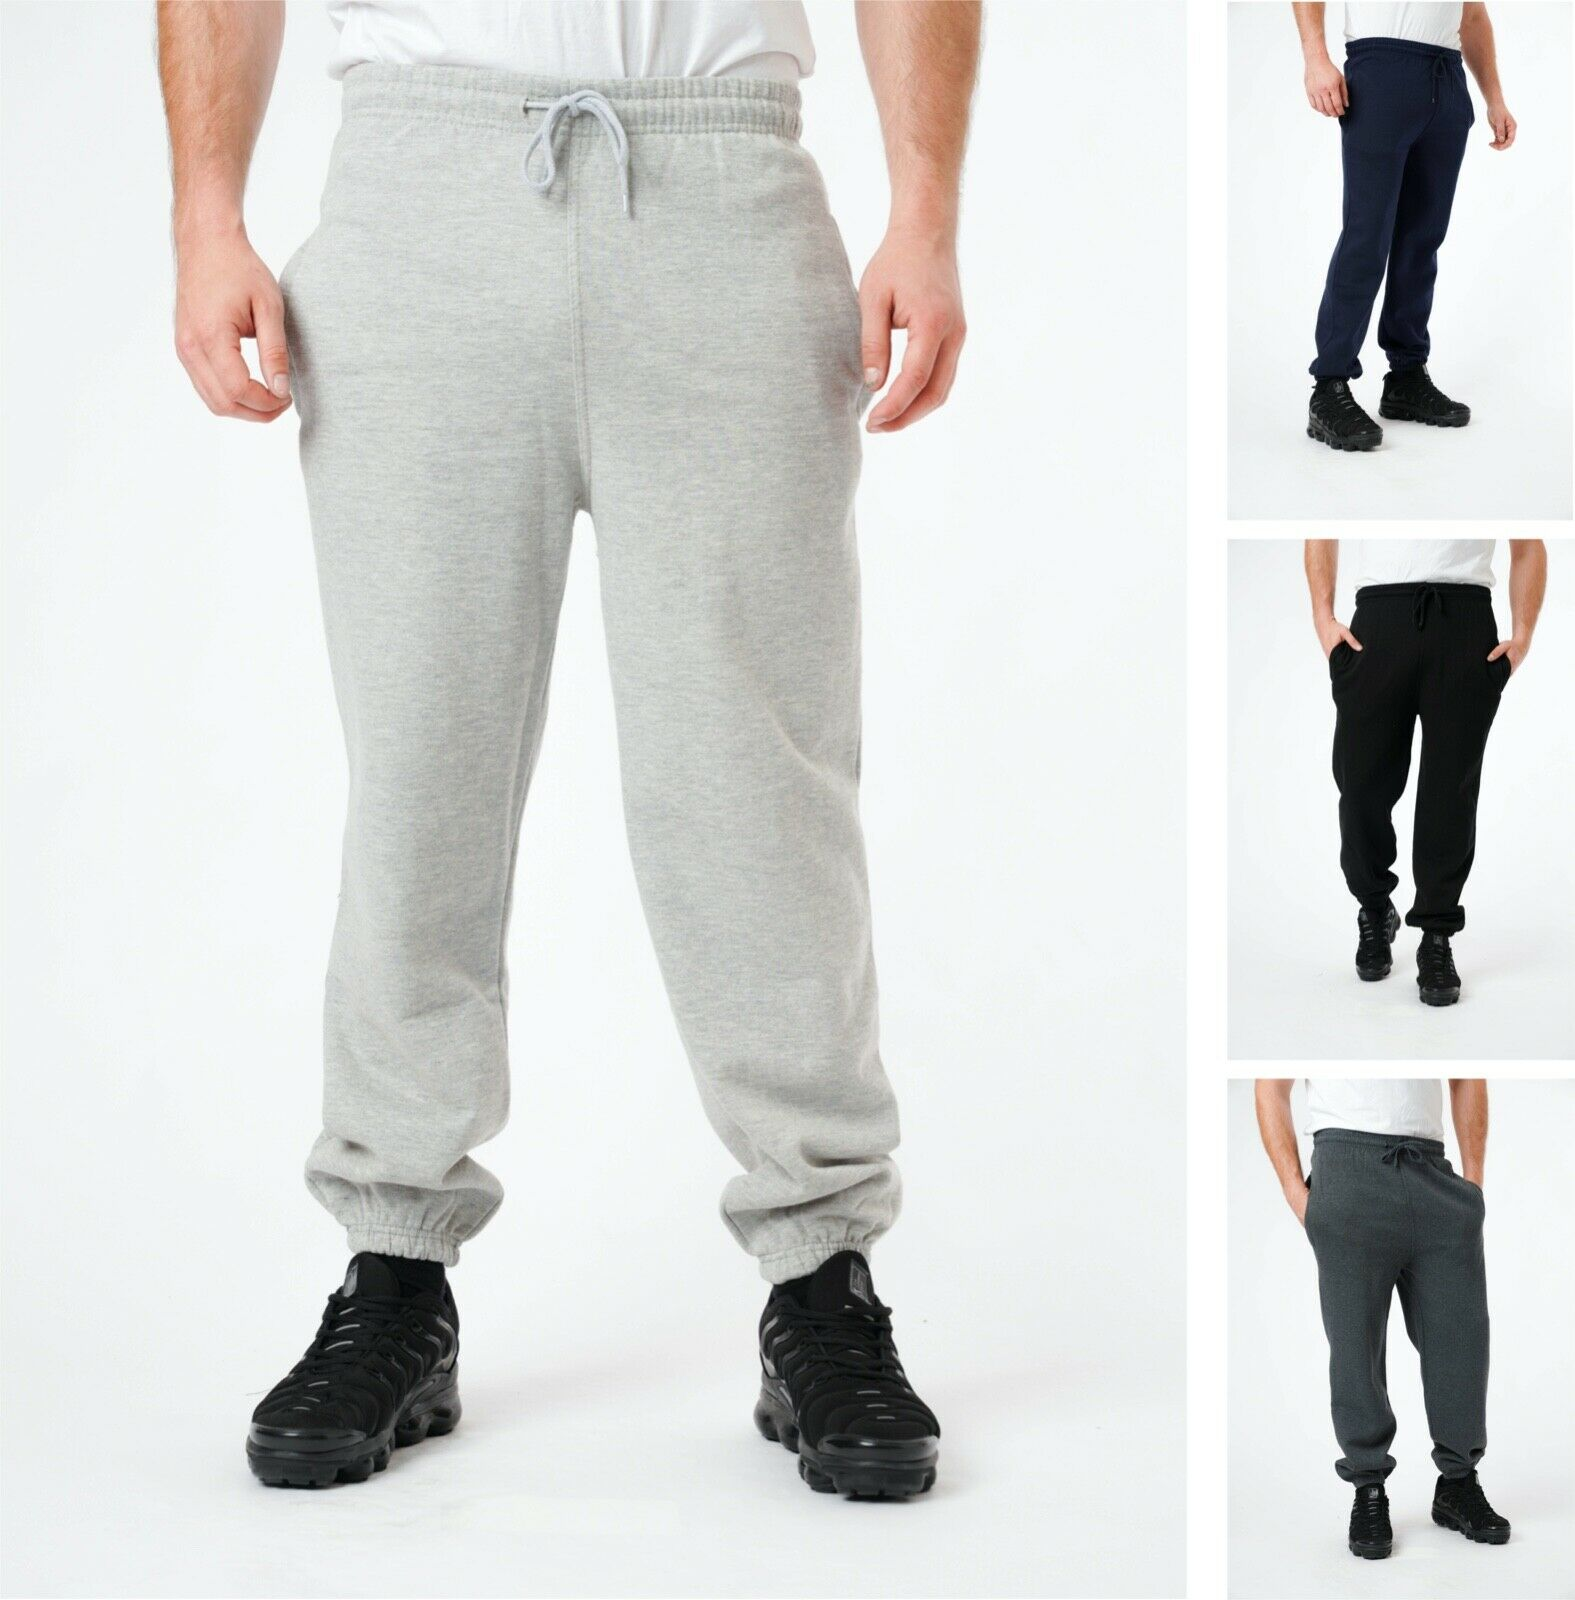 Mens Fleece Joggers Elasticated Cuffed Jogging Bottoms Track Pants Trousers